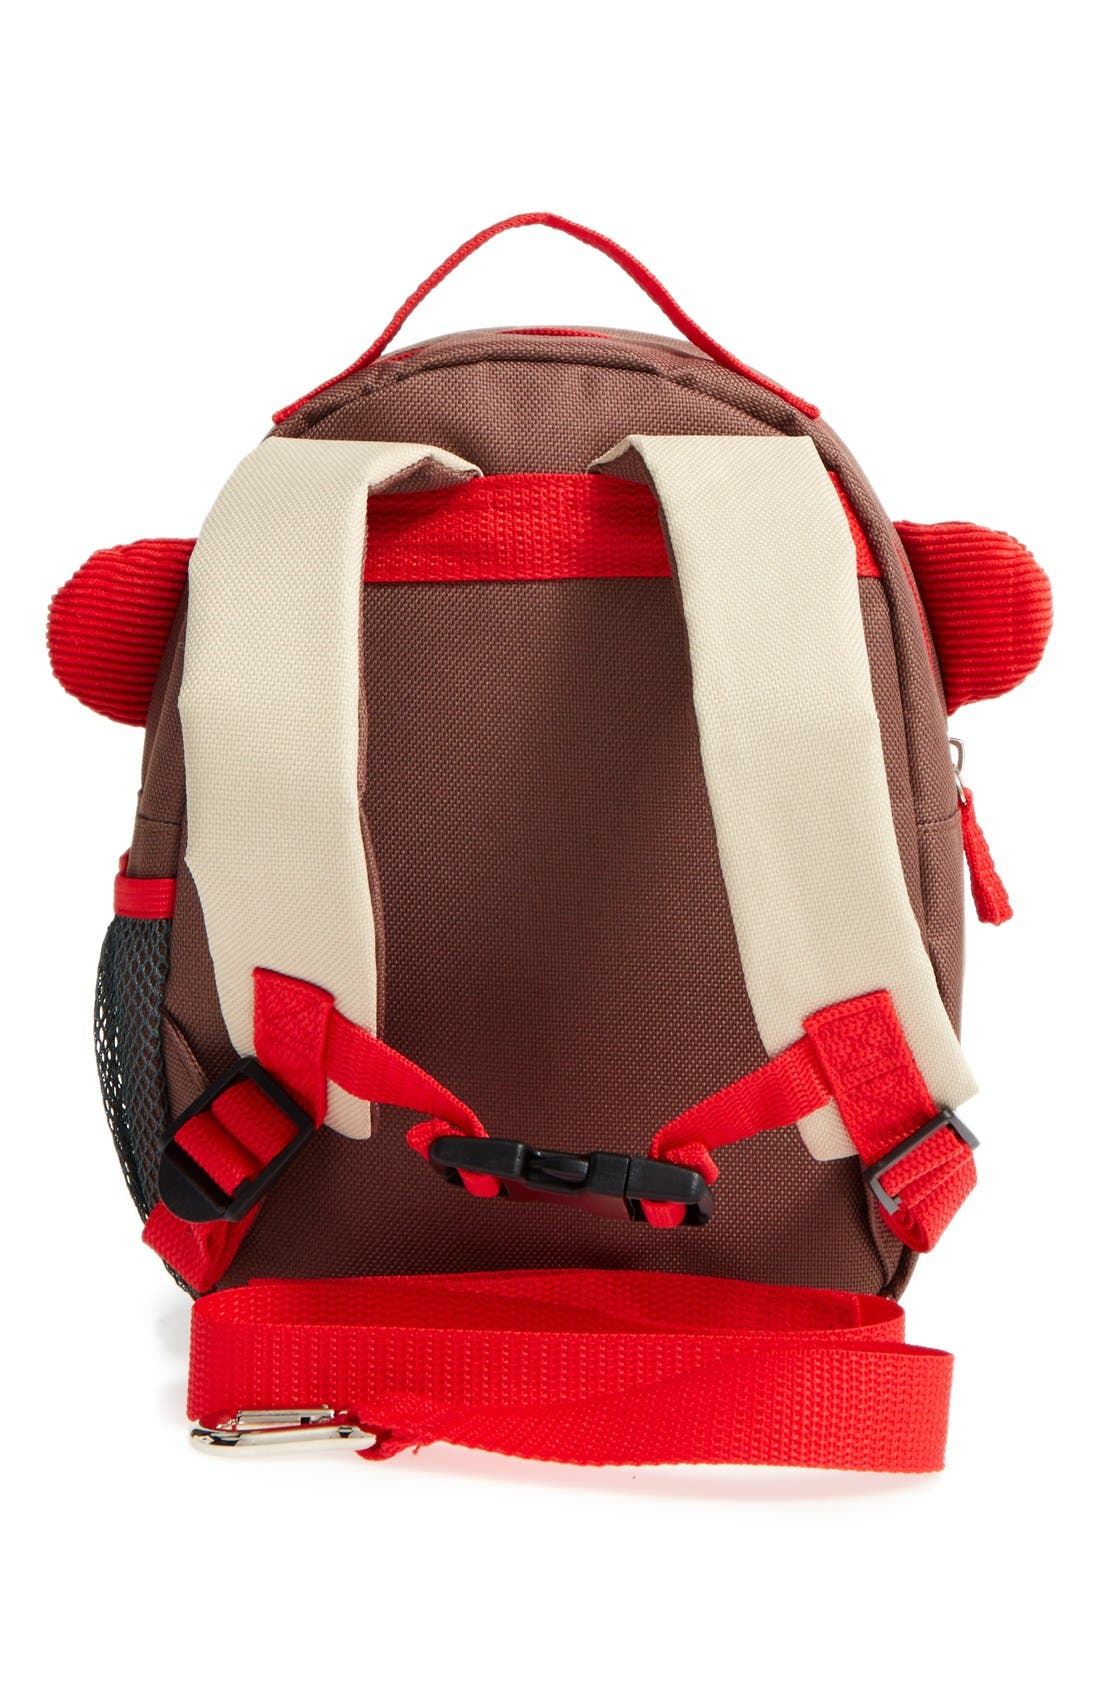 'Zoo' Safety Harness Backpack,                             Alternate thumbnail 2, color,                             MONKEY